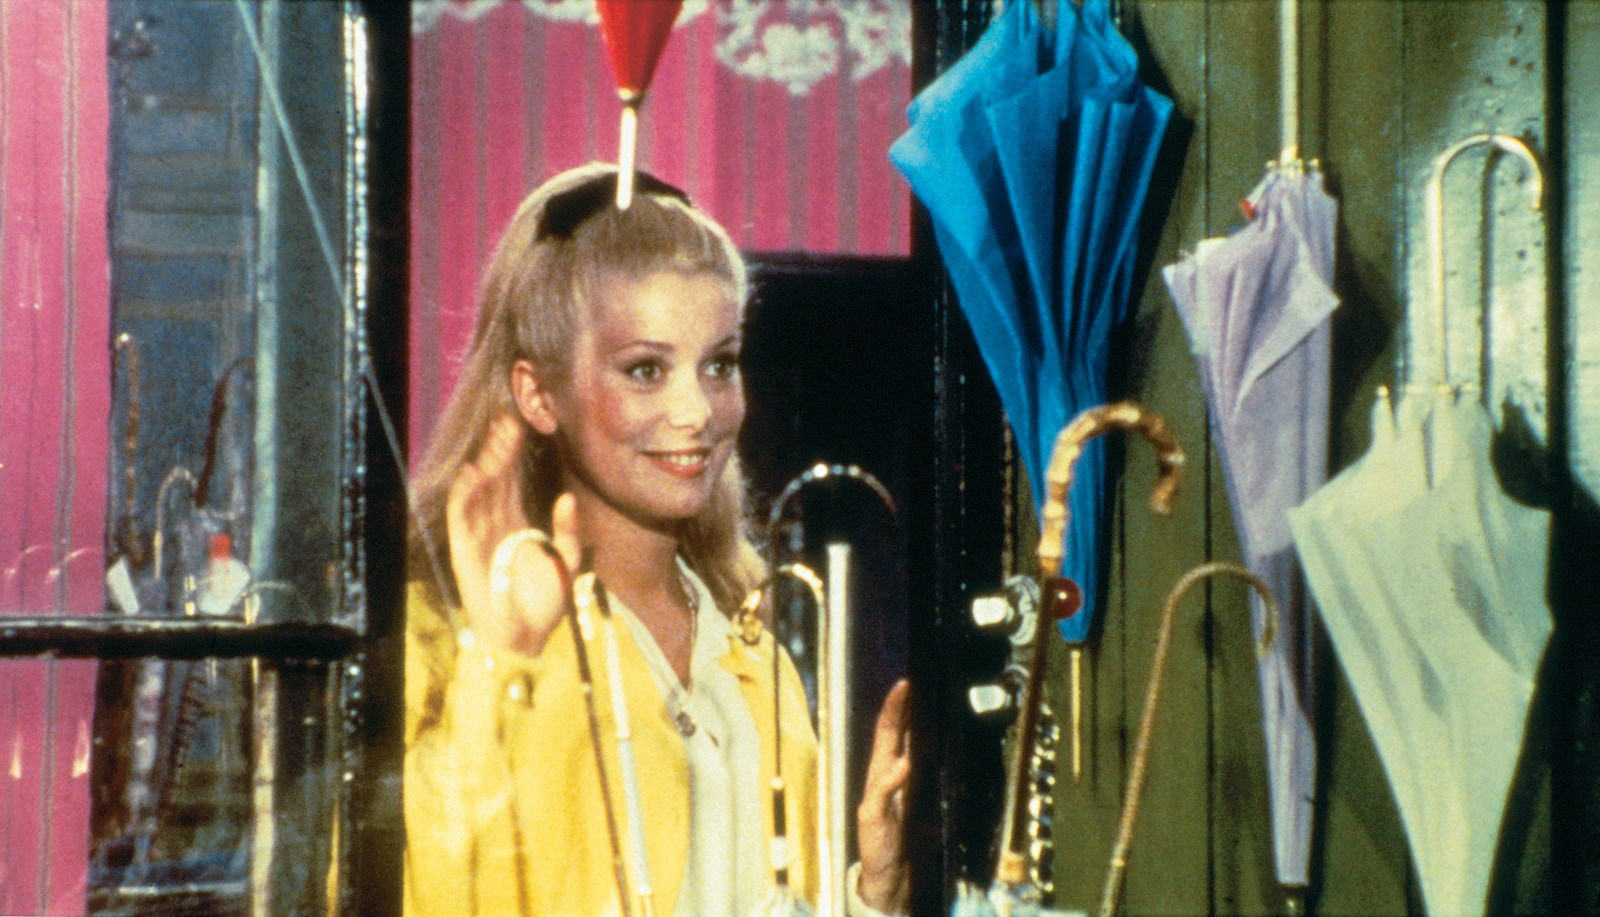 The Umbrellas of Cherbourg TCMFF 2019